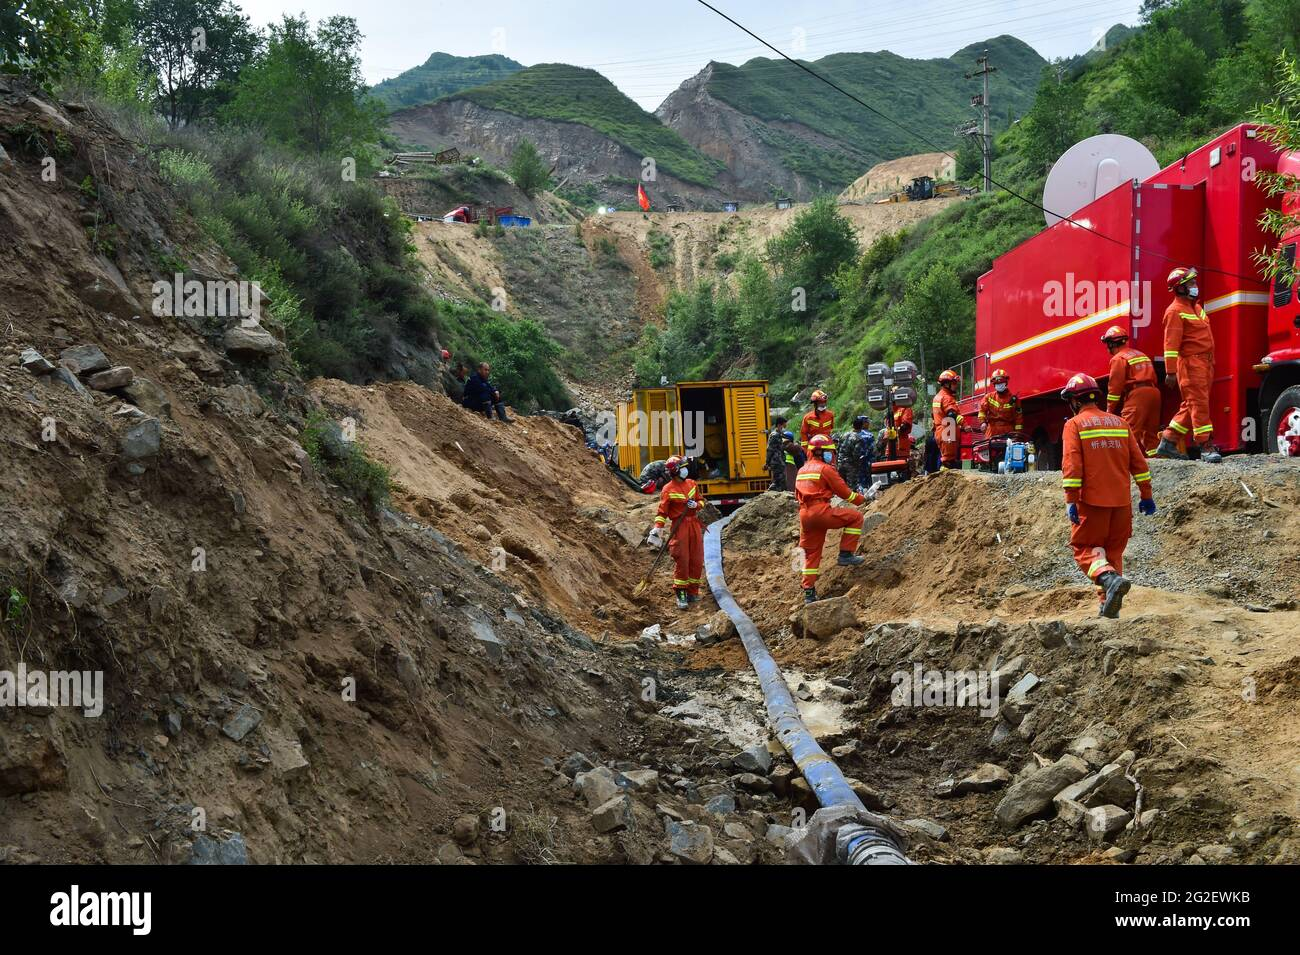 Daixian, China's Shanxi Province. 11th June, 2021. Rescuers work at the accident site of an iron mine flooding in Daixian County, north China's Shanxi Province, June 11, 2021. Thirteen people were trapped in an iron mine flooding in north China's Shanxi Province, local authorities said Thursday.The rescue work is underway. Credit: Chai Ting/Xinhua/Alamy Live News Stock Photo